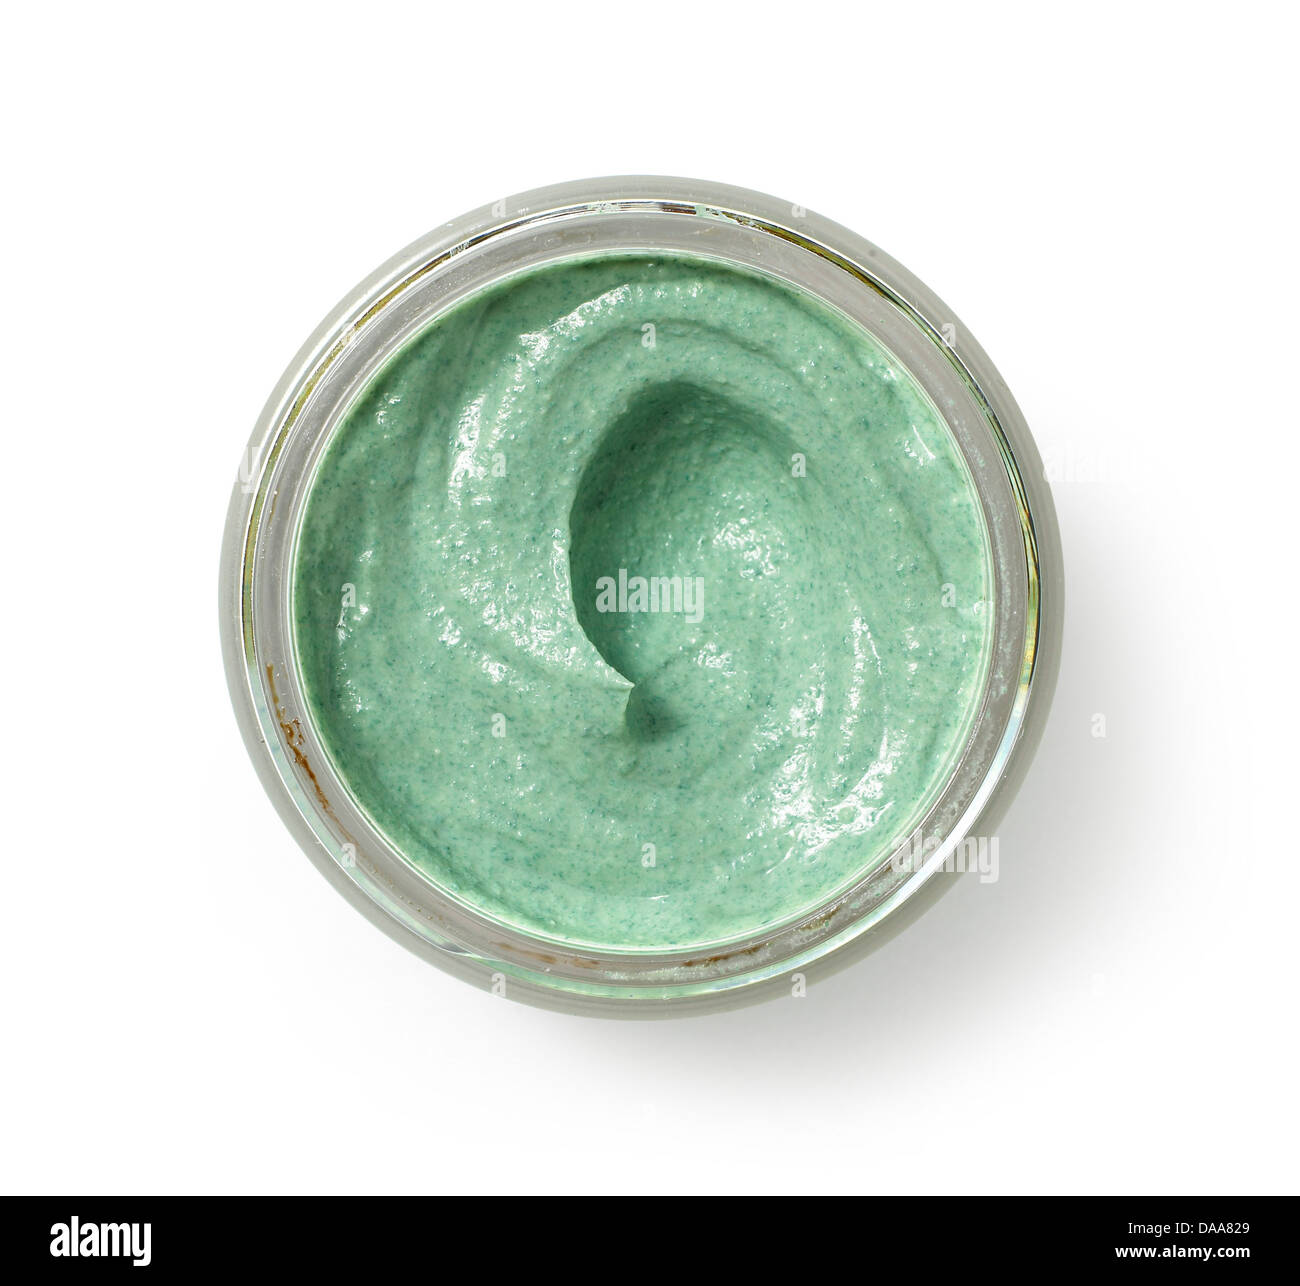 green beauty cream gel cut out onto a white background - Stock Image